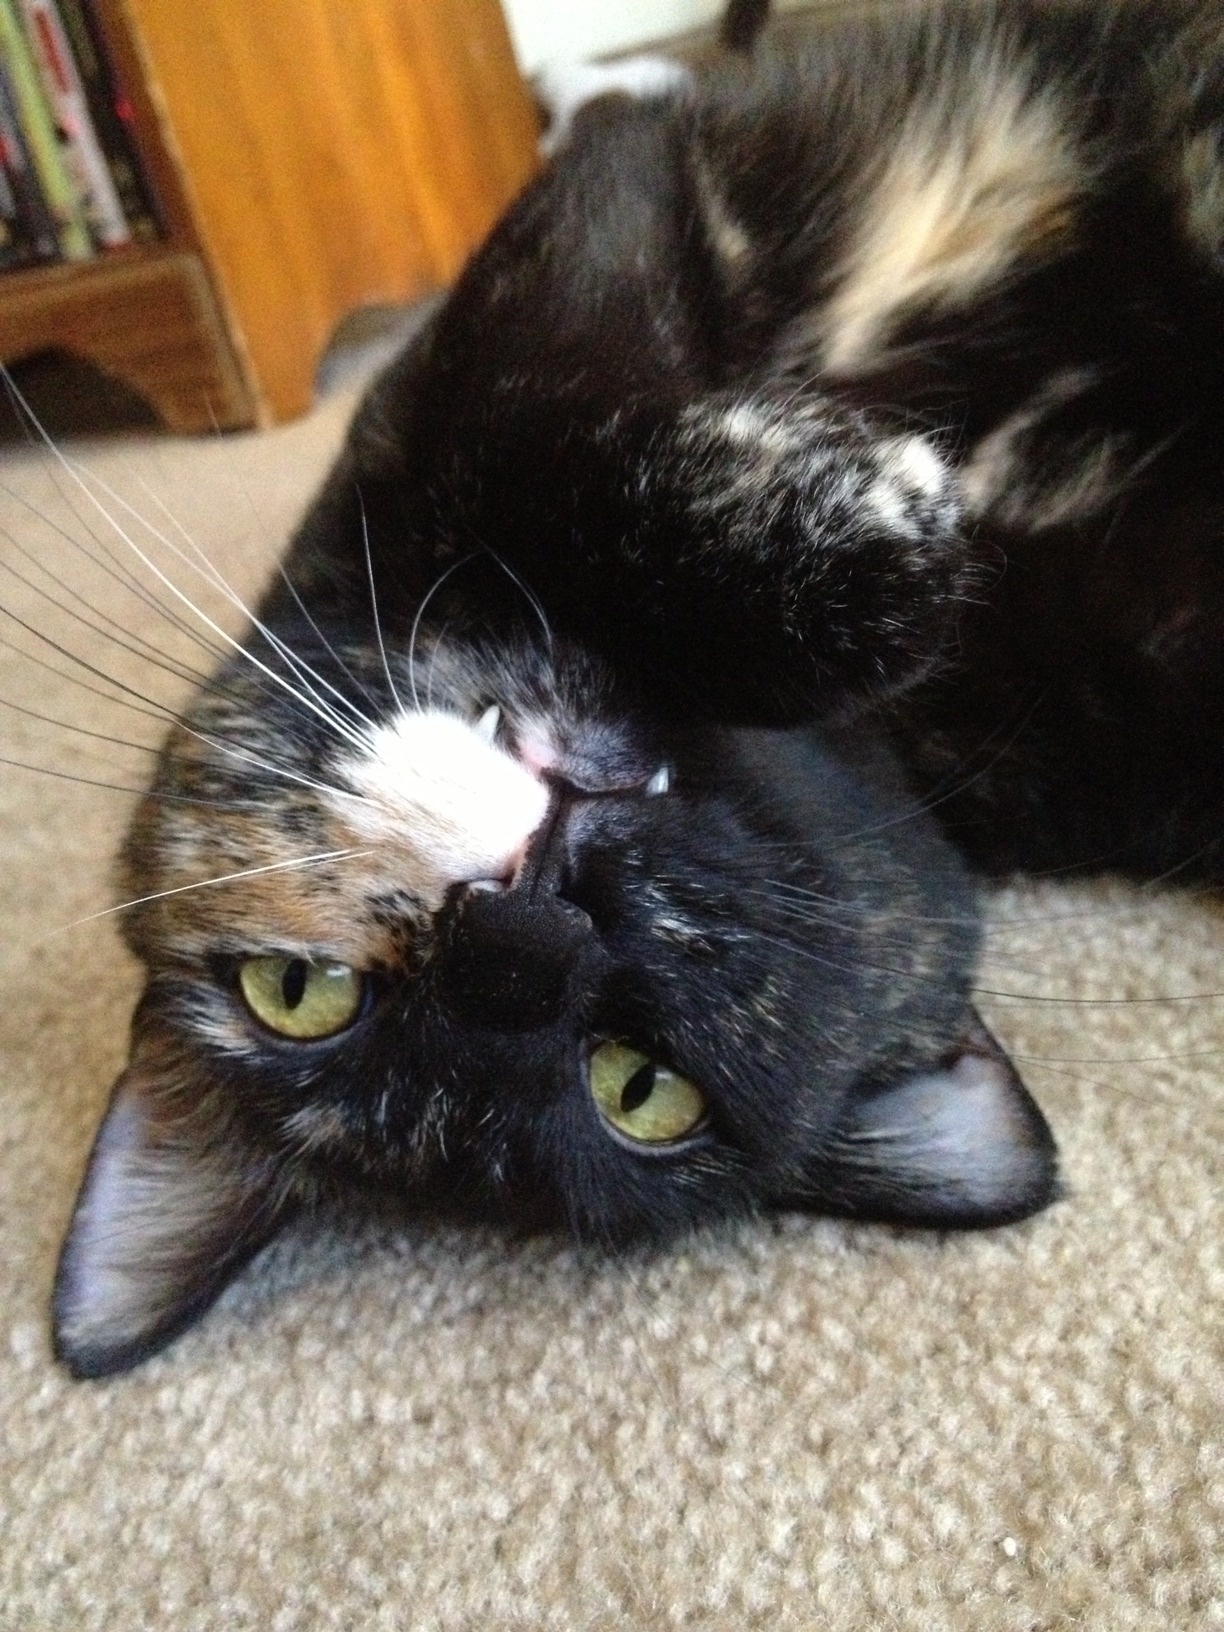 Vampurr Photo via derpy cats